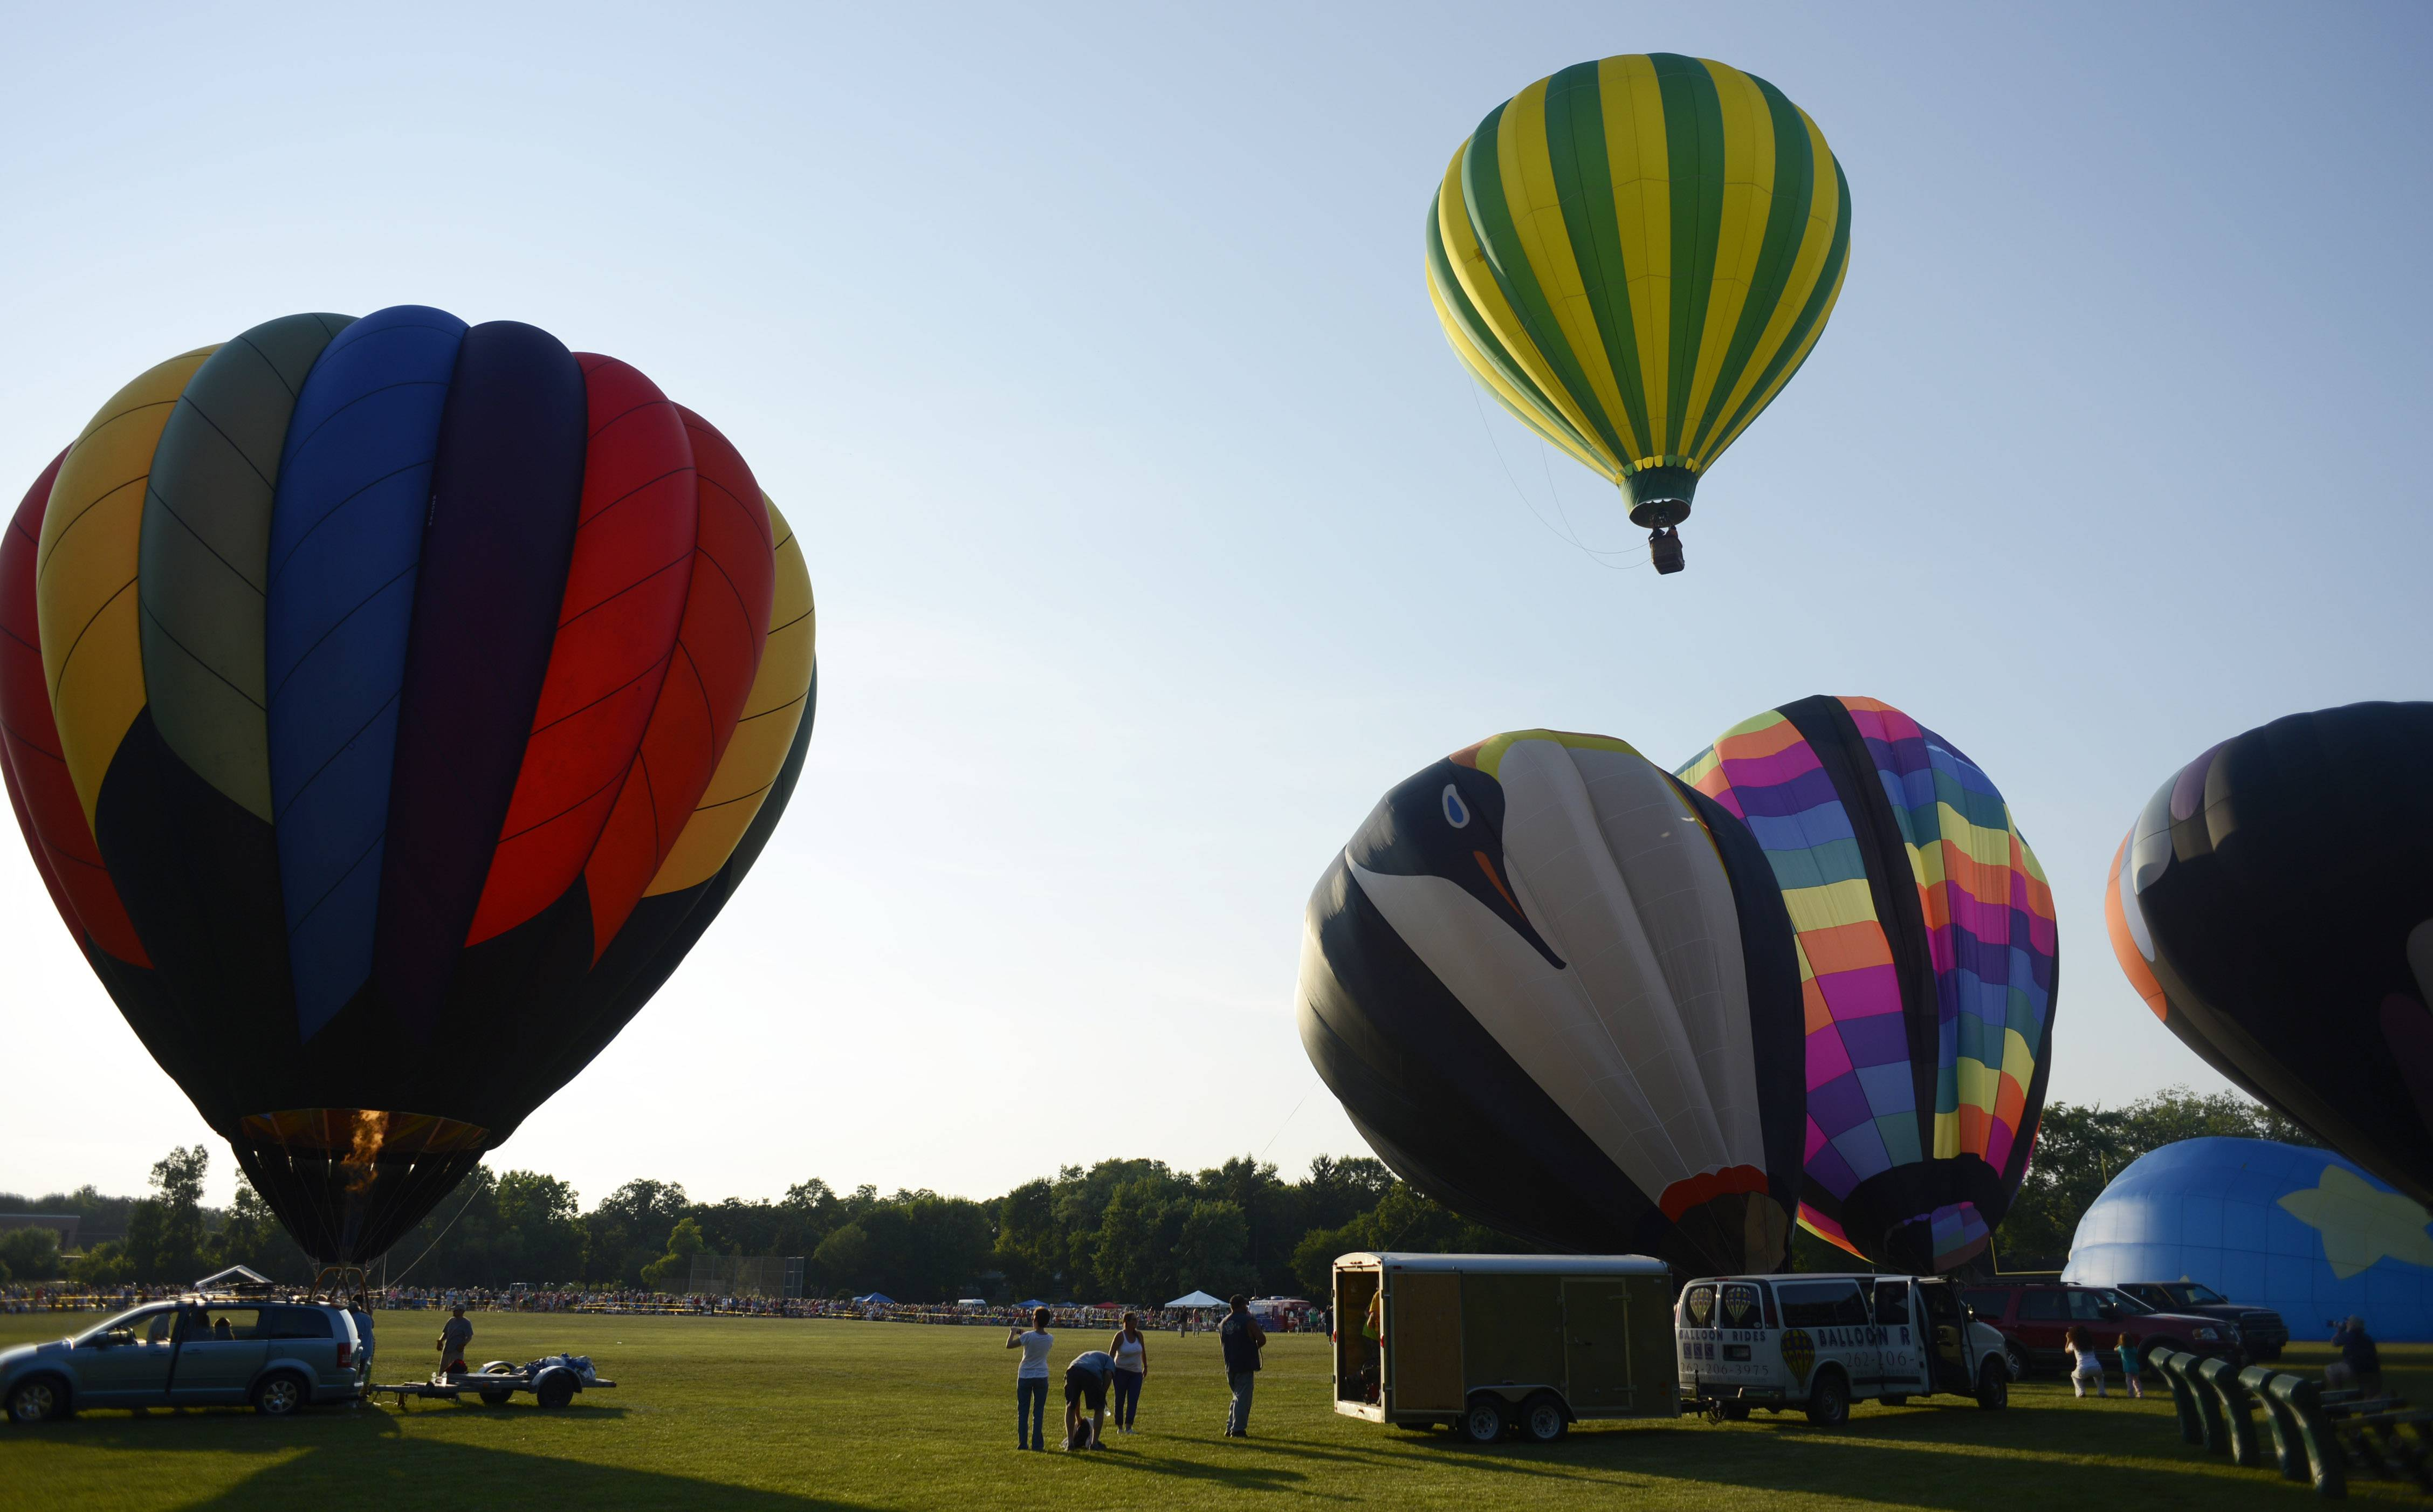 Balloons are launched during the Color Aloft Balloon Festival last year in Grayslake. The second annual event is Saturday, Aug. 23.